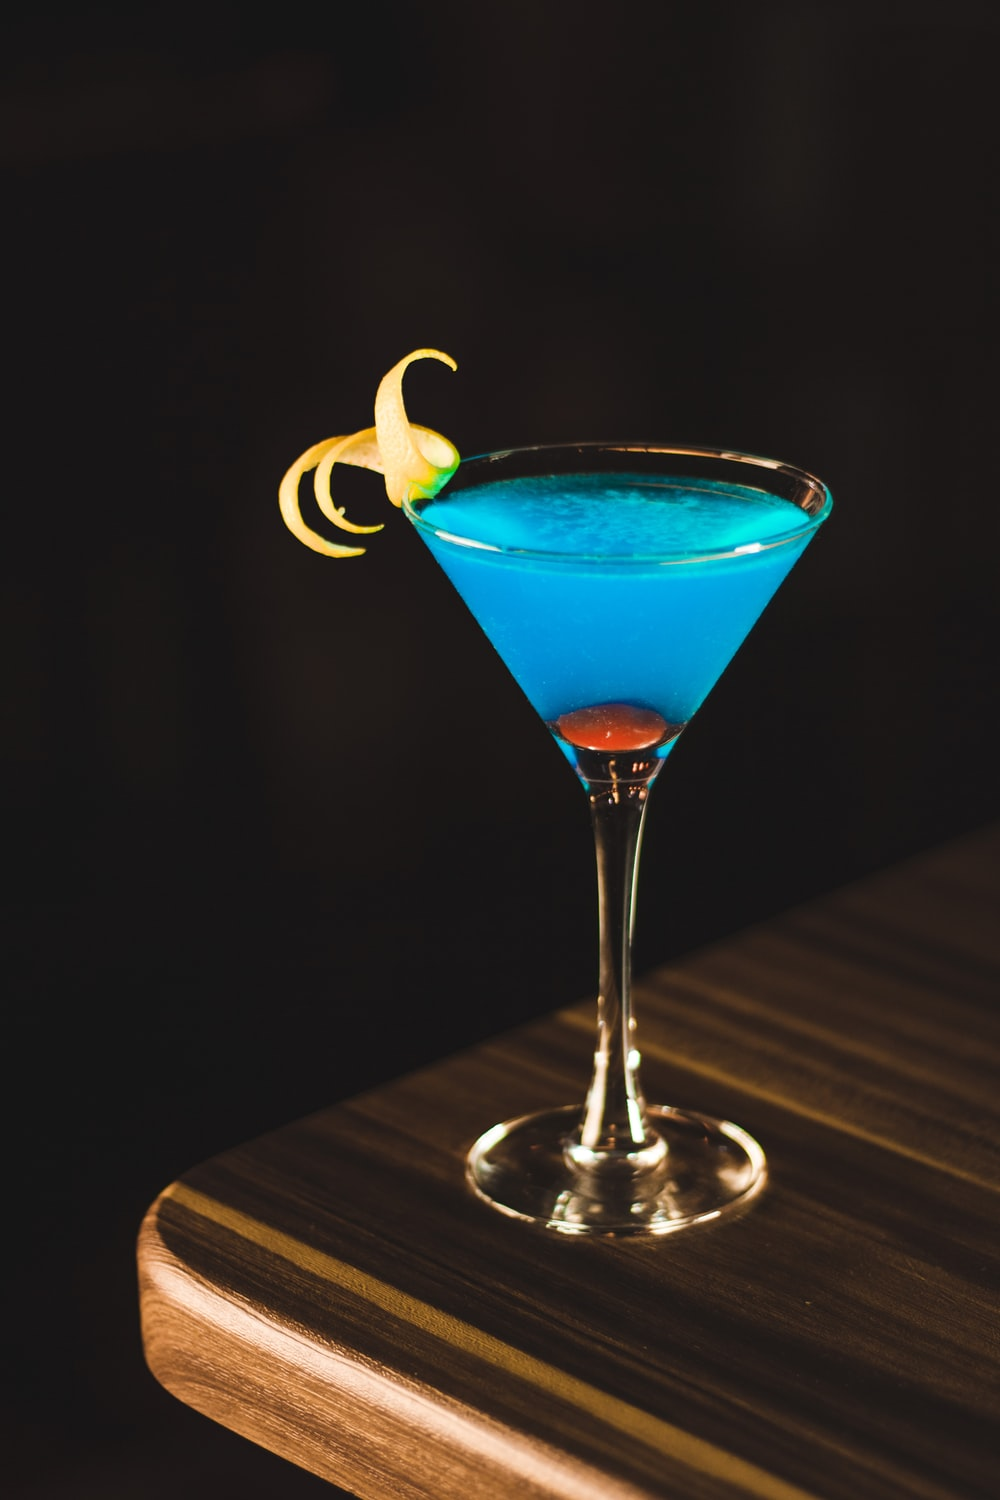 blue drink in wine glass on corner of wooden table